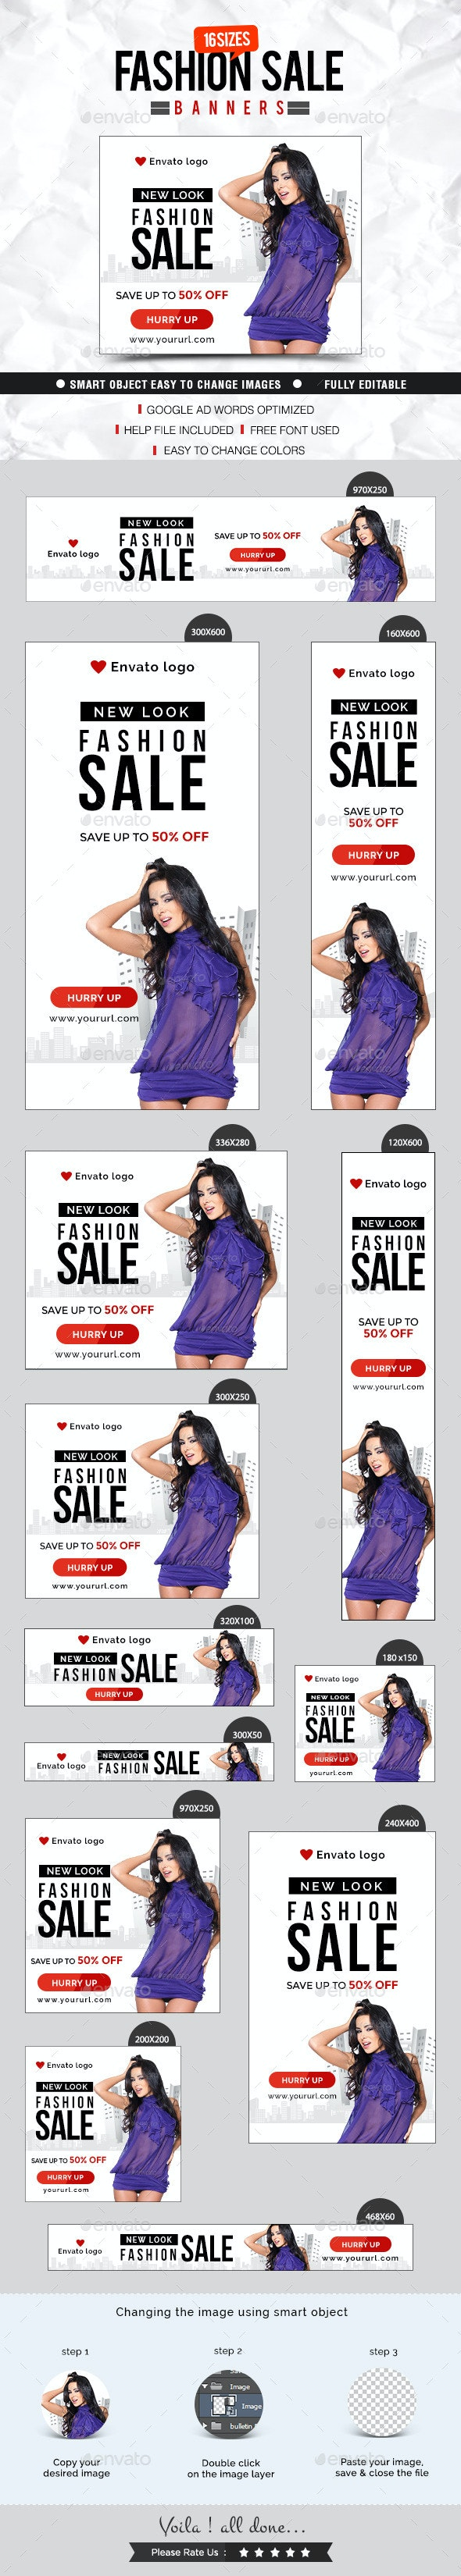 Fashion & Clothing Banner Design - Banners & Ads Web Elements